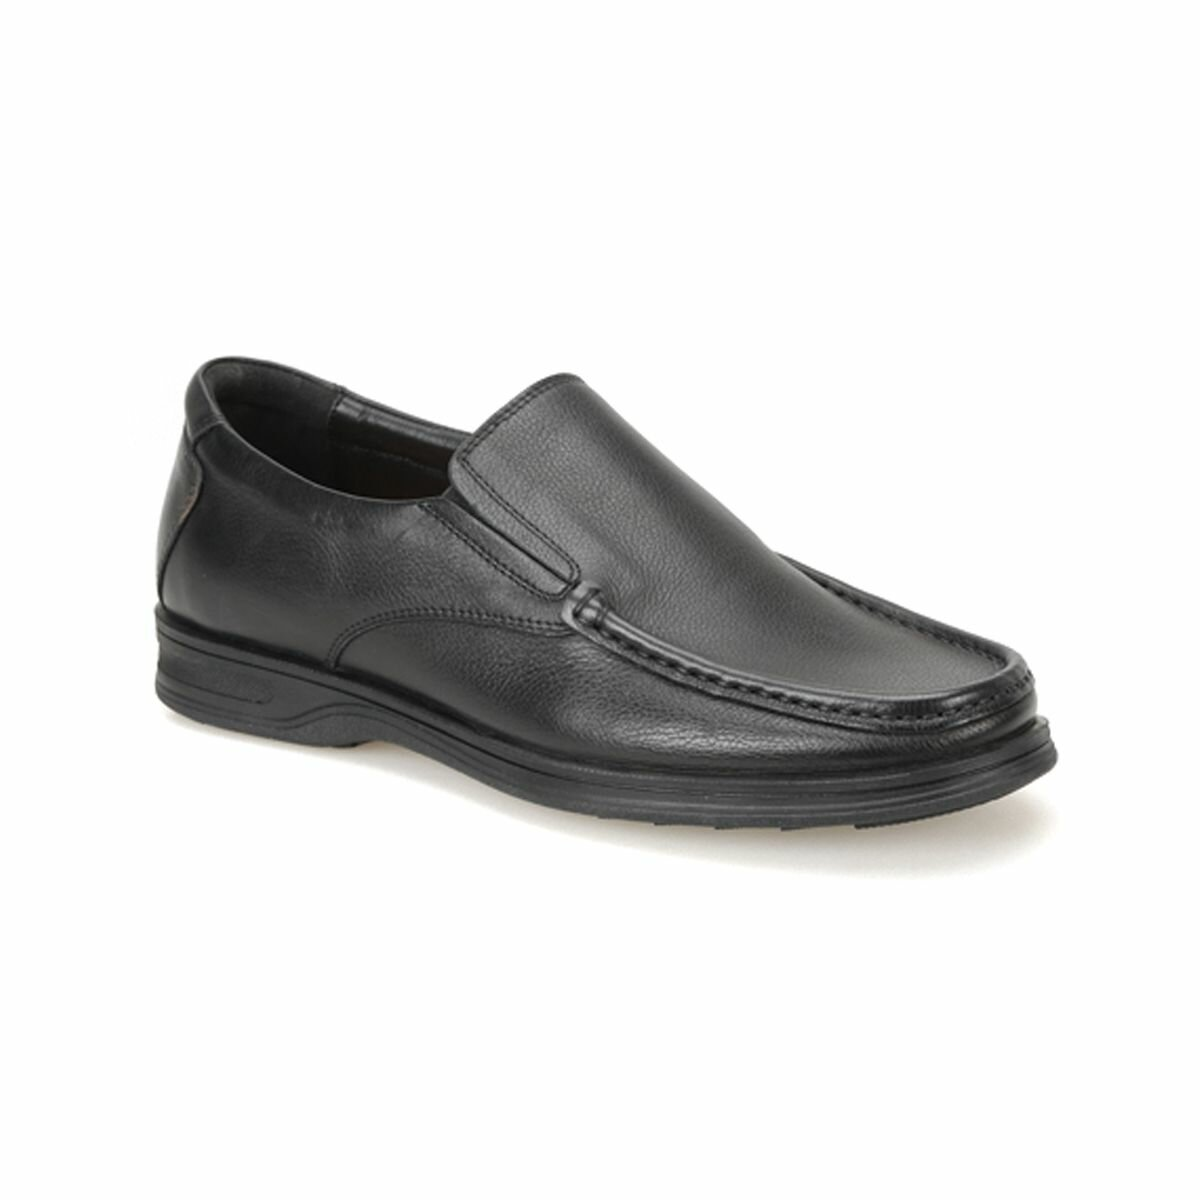 FLO D-04169 Black Male Shoes Flogart